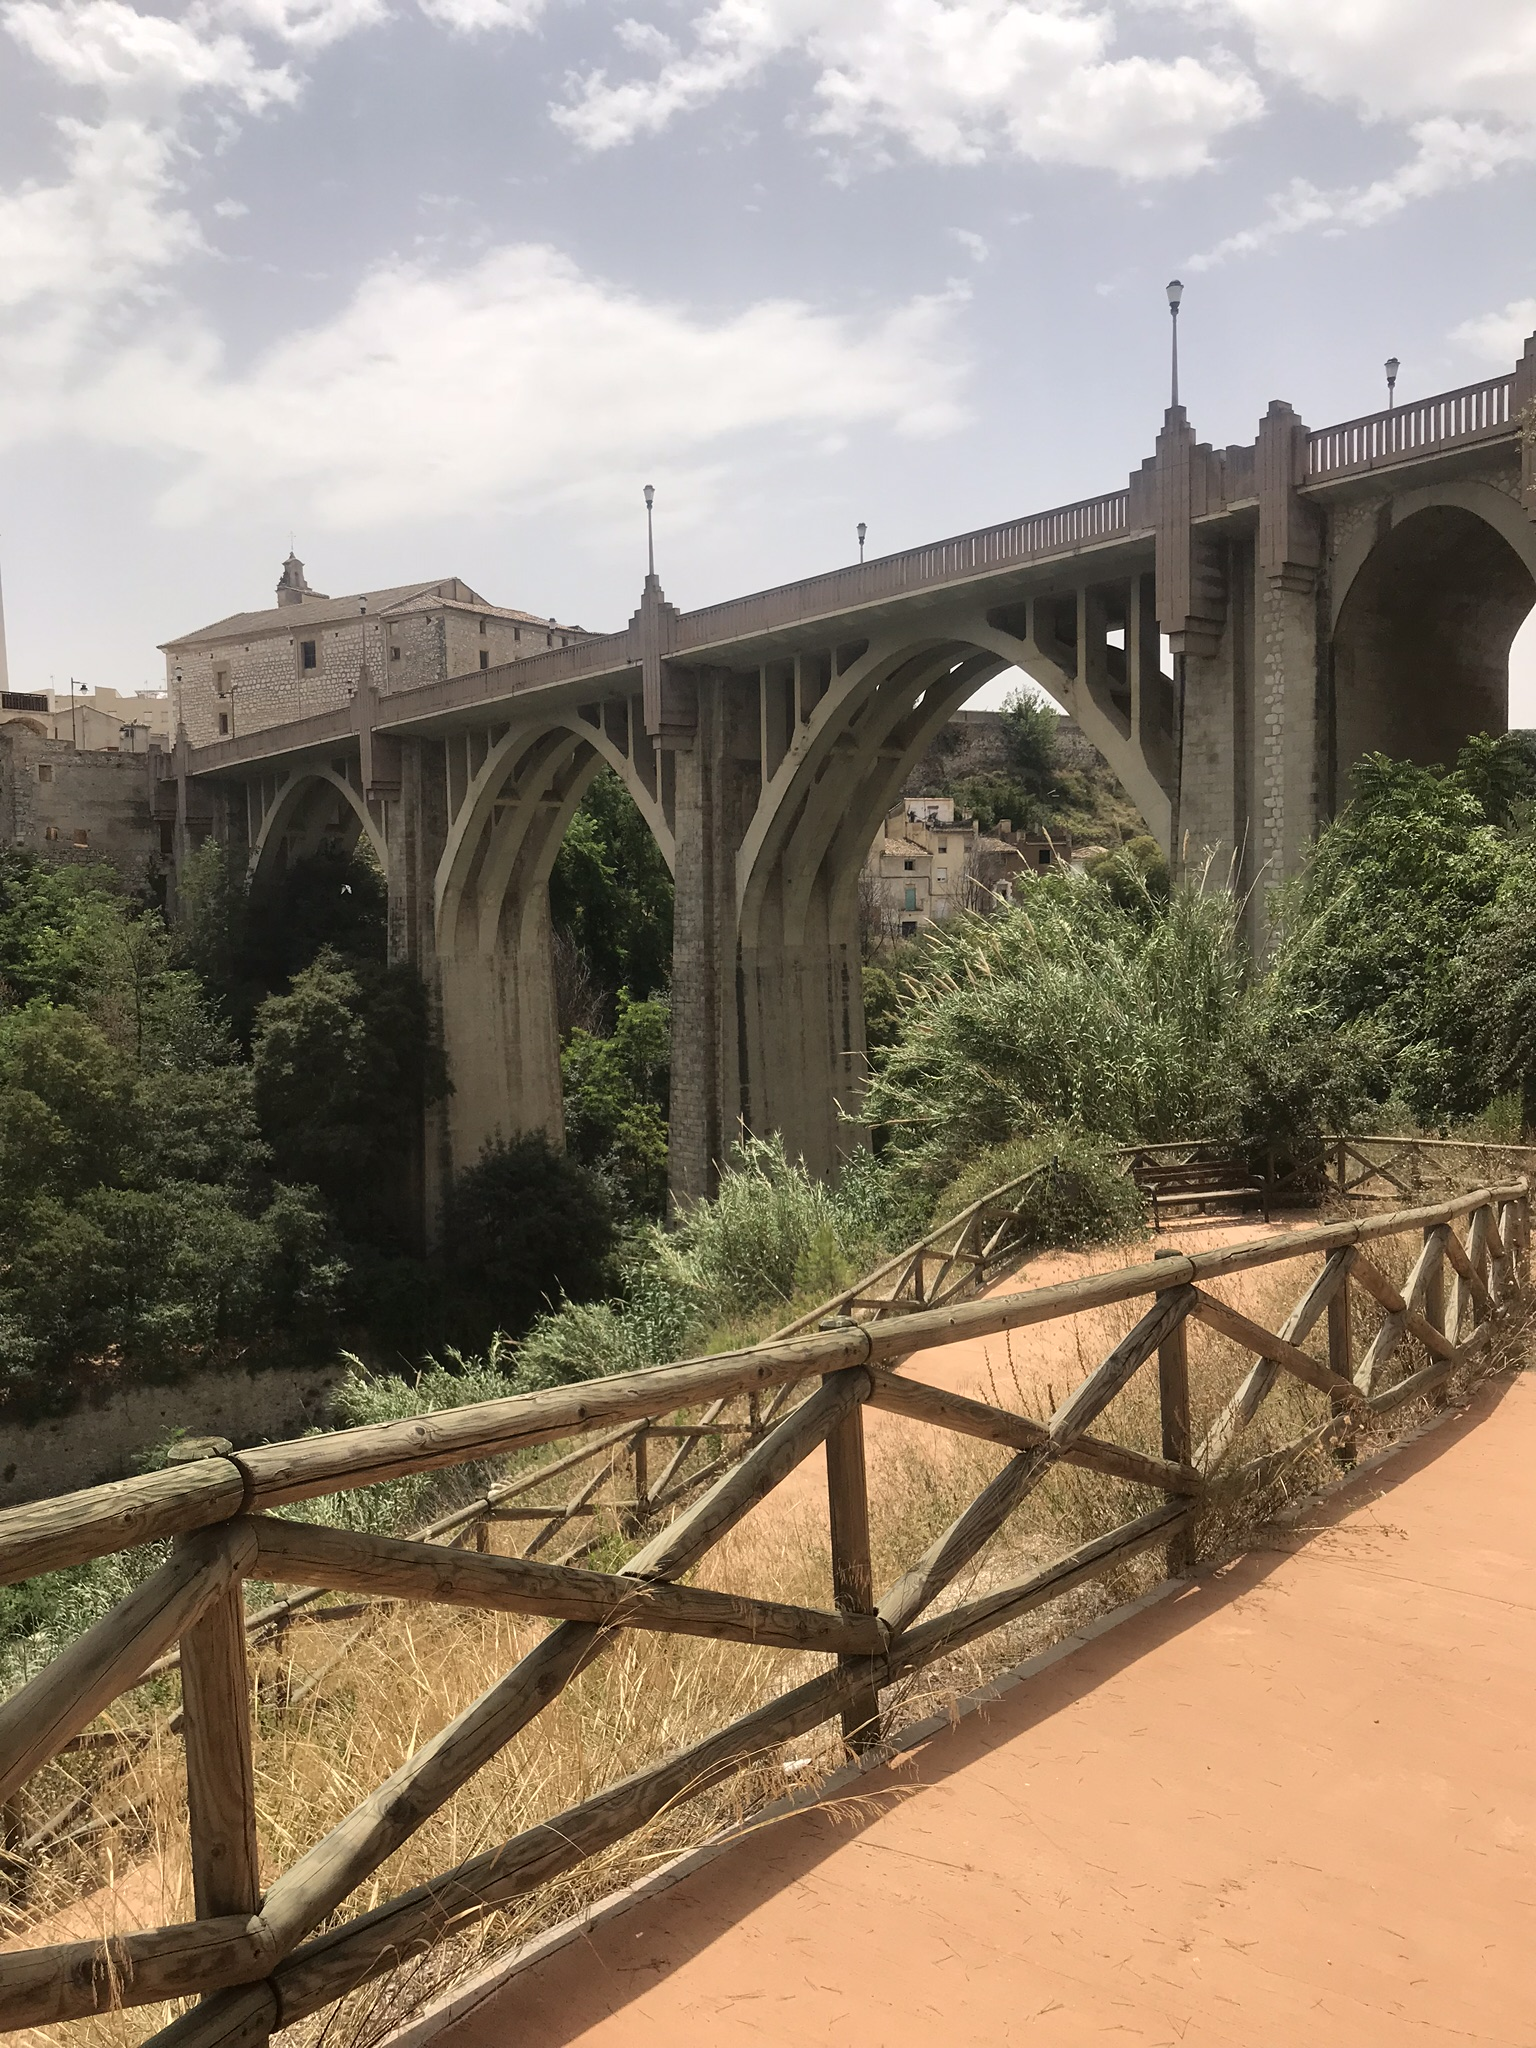 Spain 2018 Day 3 - Looking back at the bridge over the river